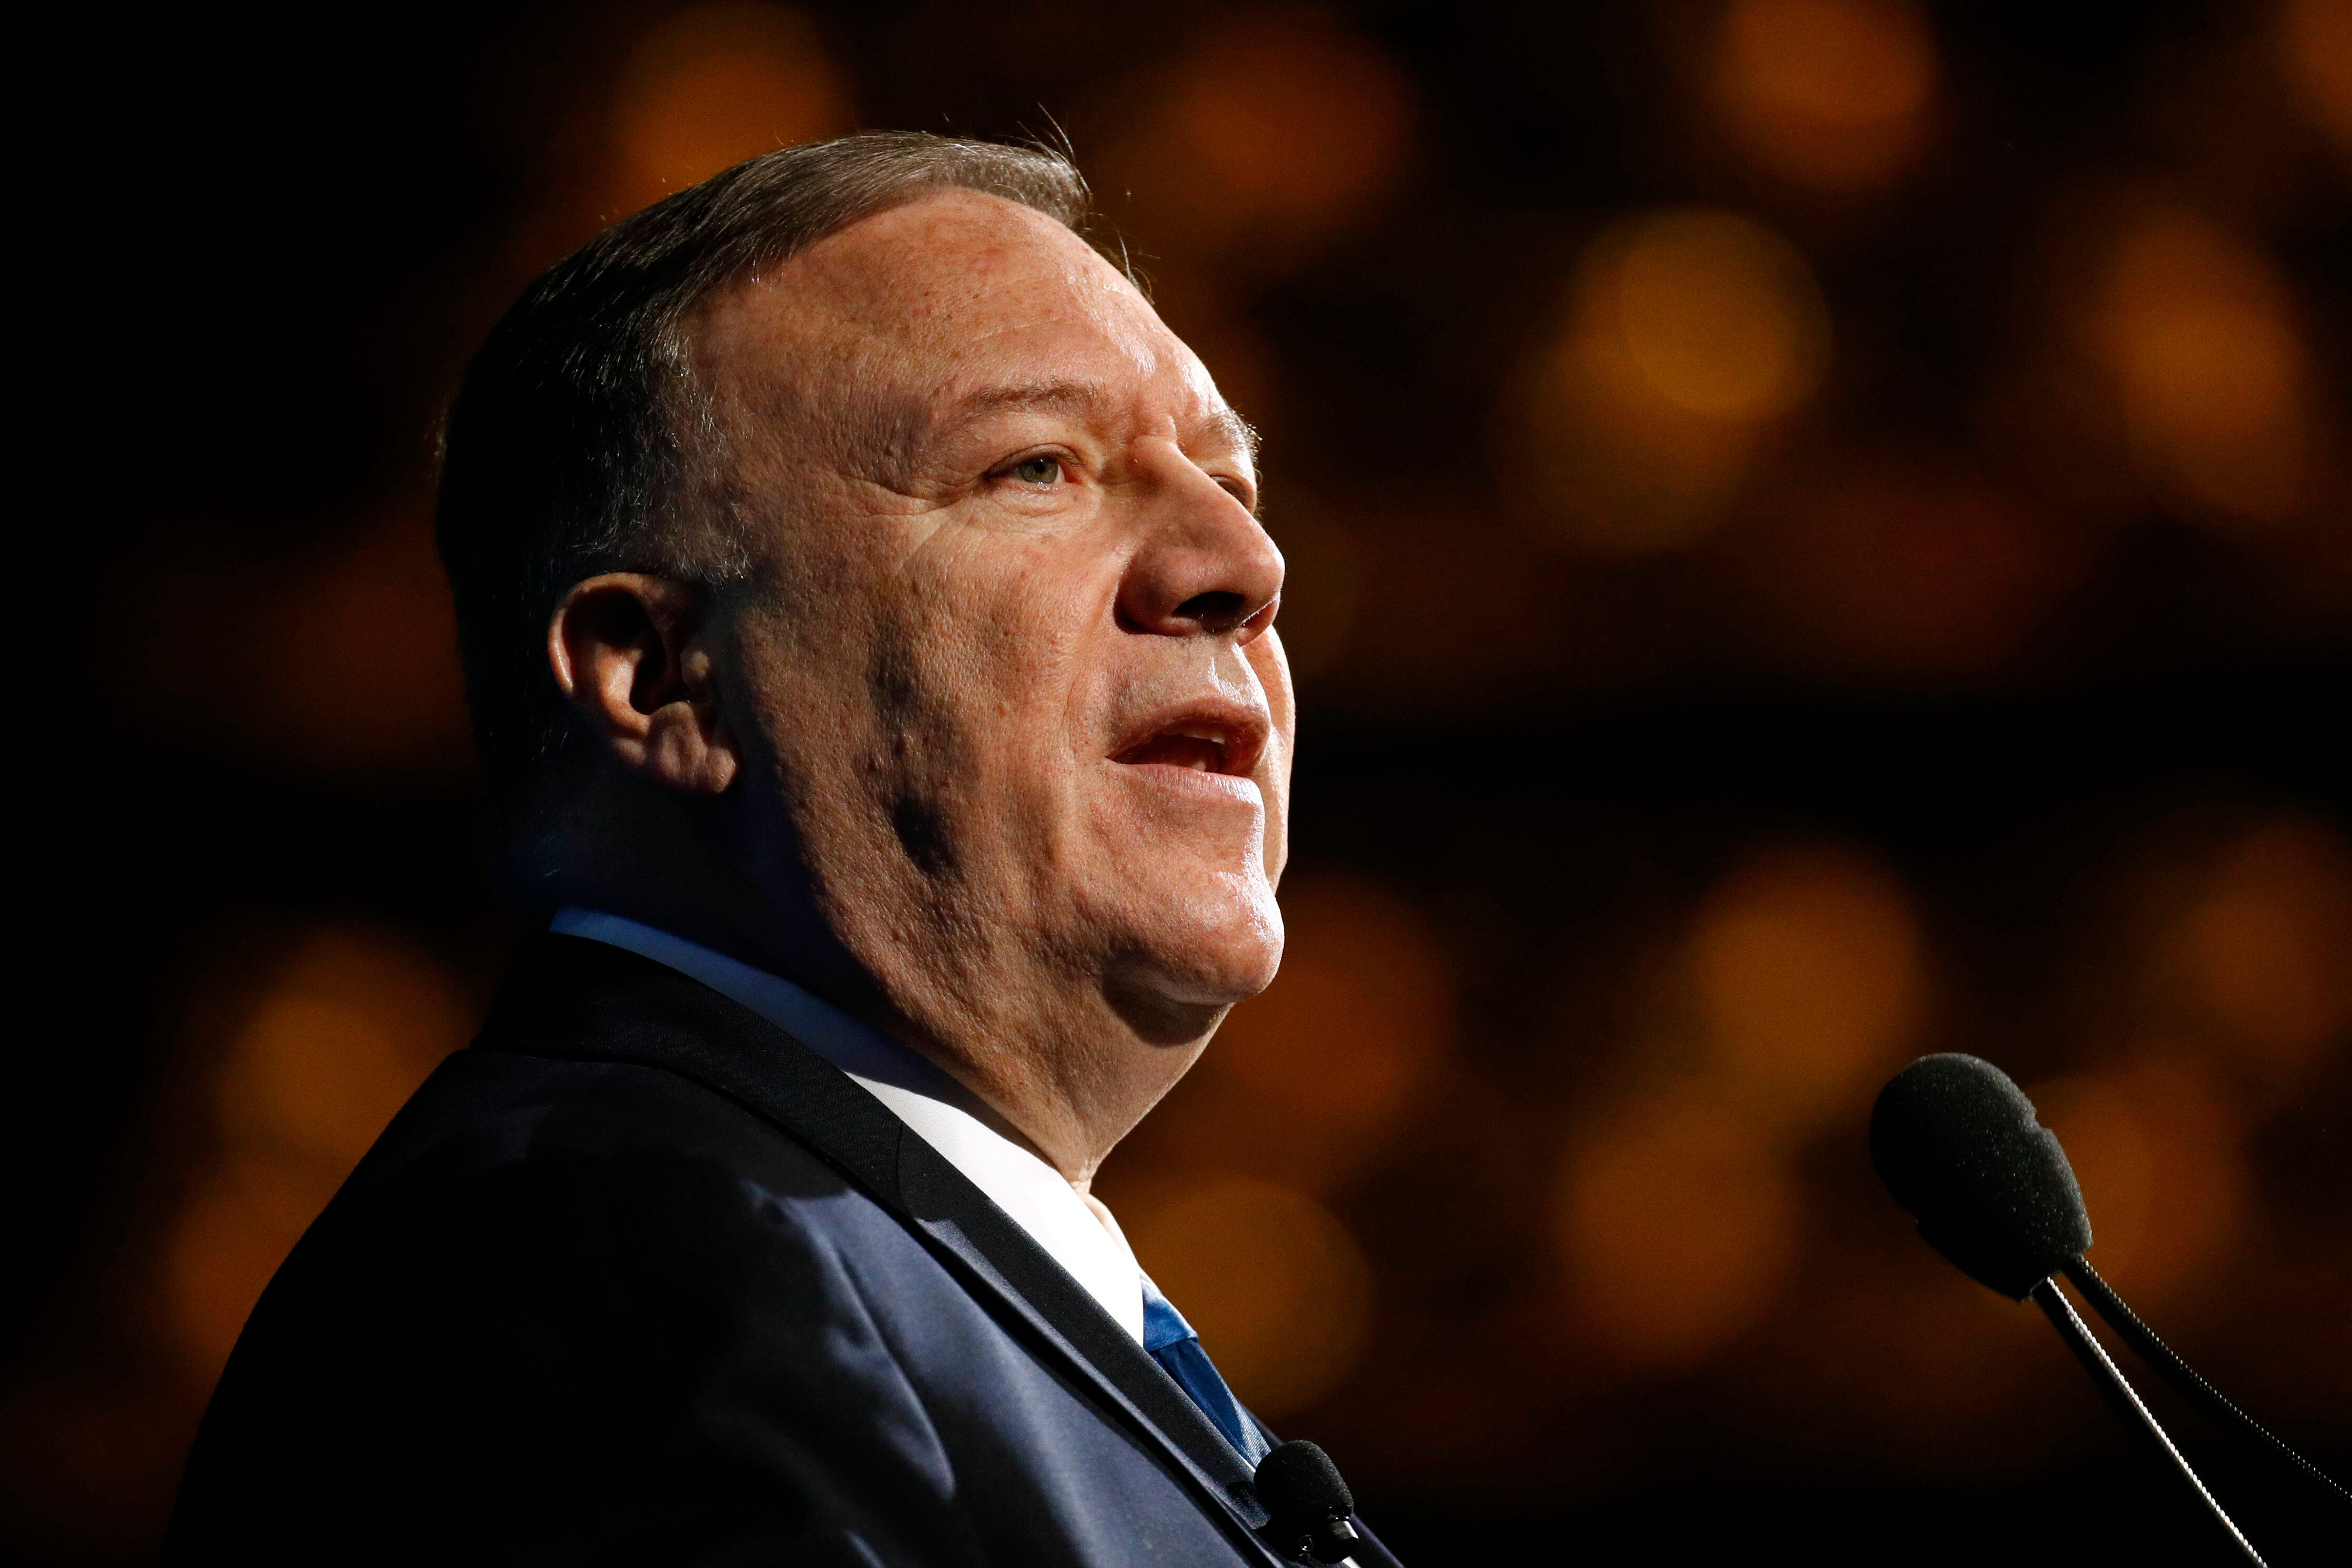 Secretary of State Mike Pompeo was also on the July 25 call to the Ukrainian president.